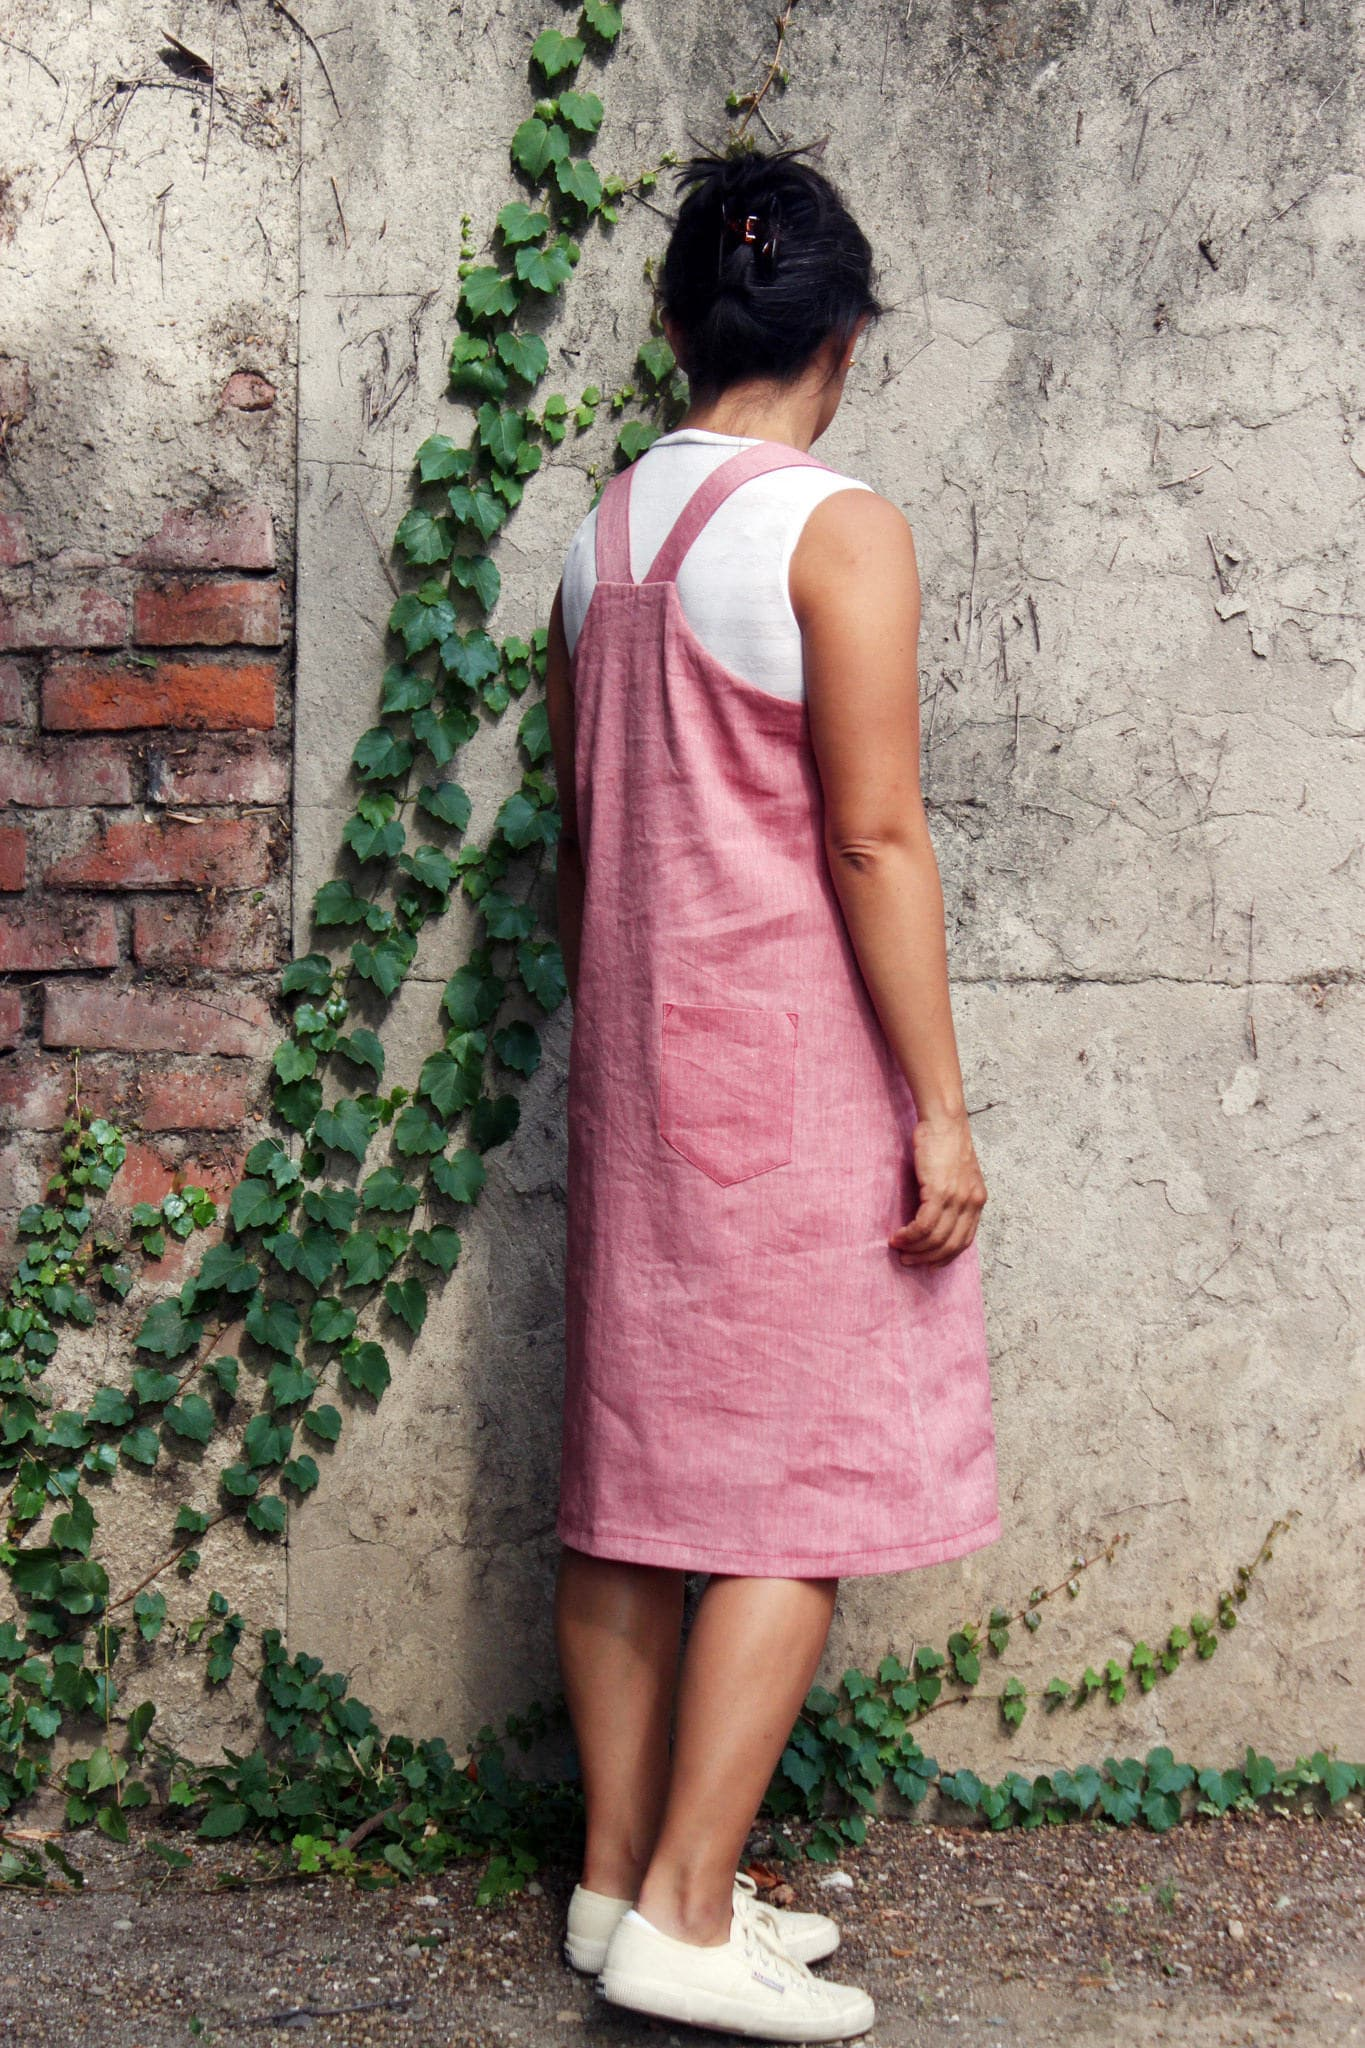 Woman overall dress dungarees dress dungarees woman linen